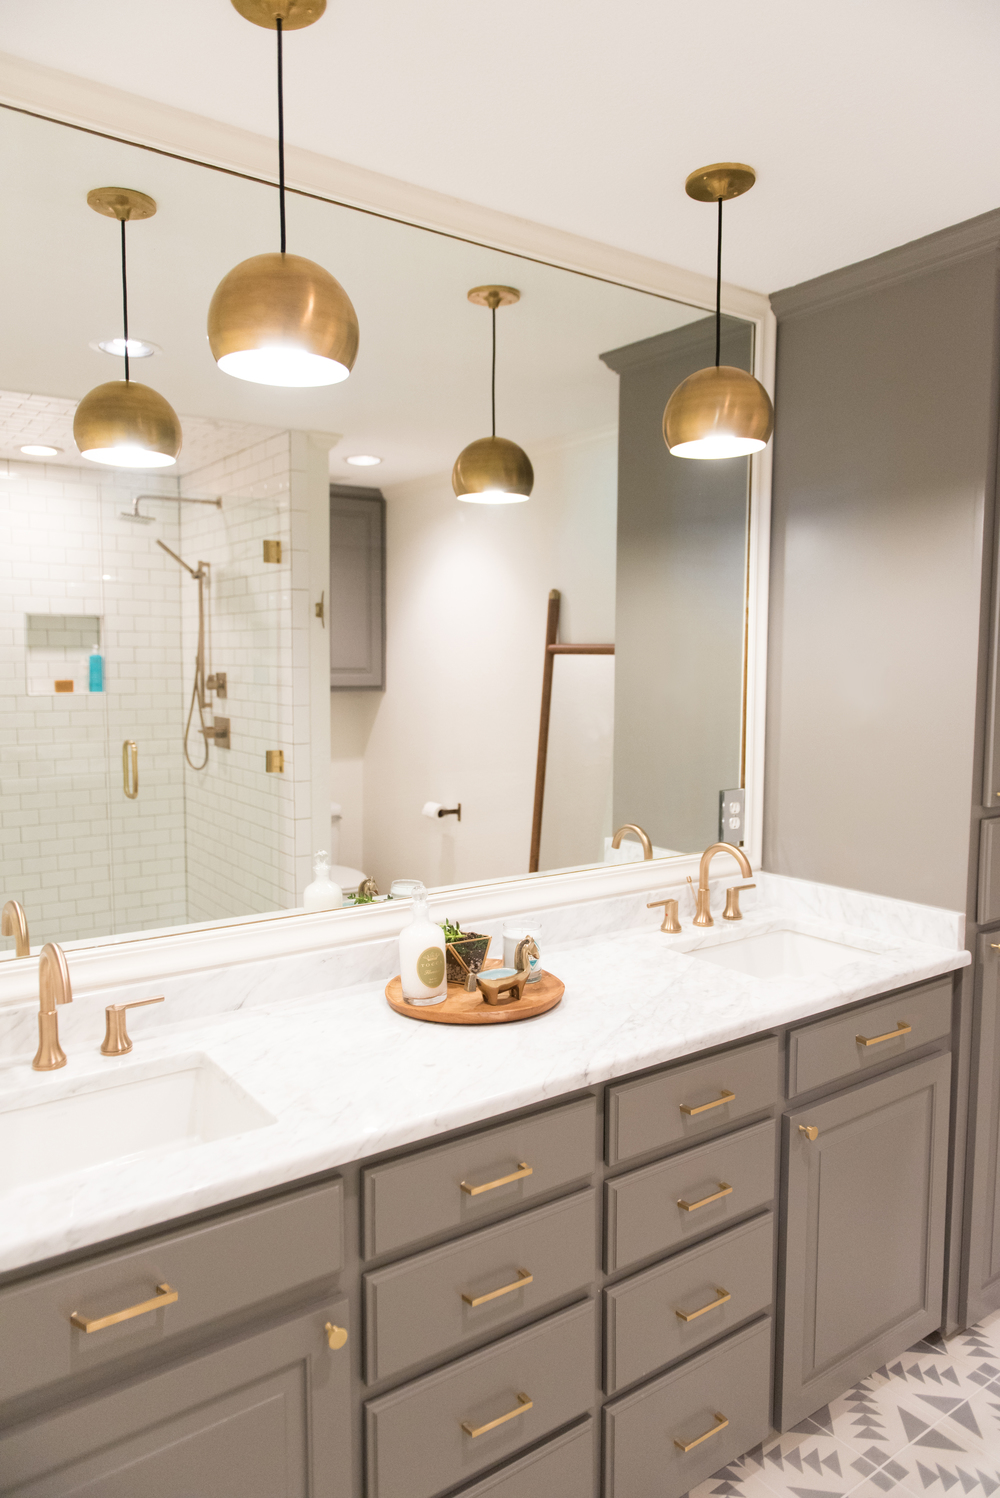 Photos by  Matt and Julie Weddings  |  Hardware  |  Lighting  |  Sink Faucet  |  Shower Head  |  Tile  |  Paint